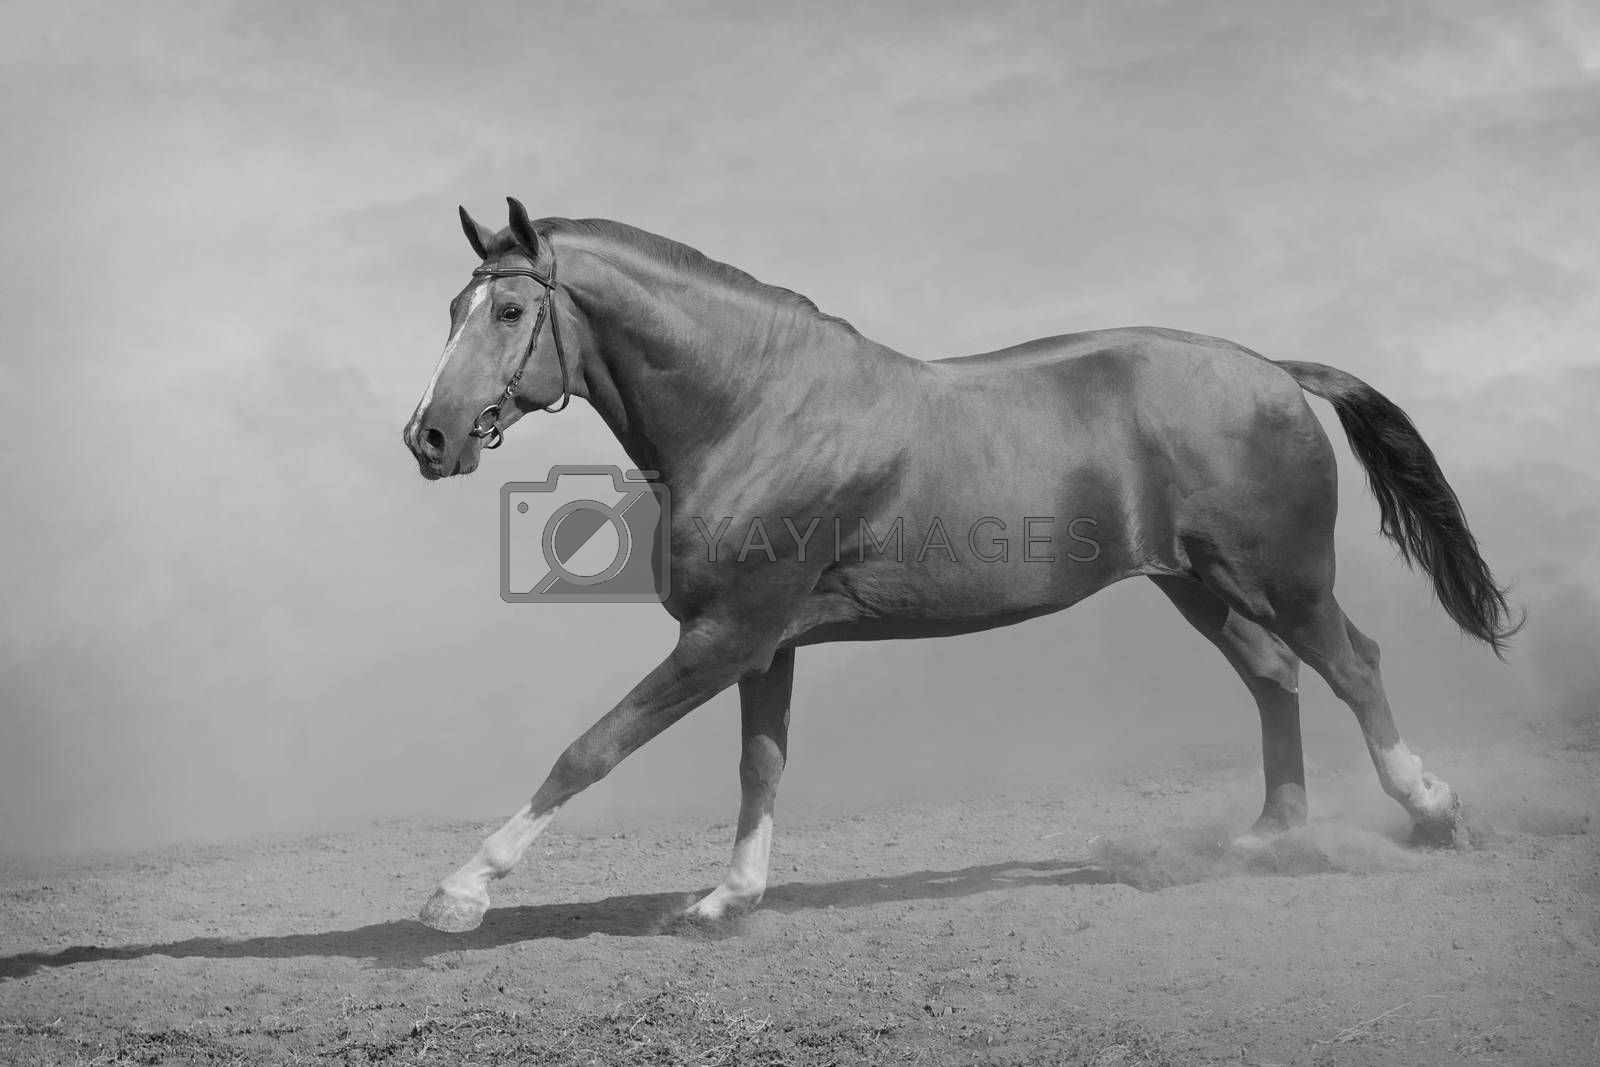 Horse galloping in sand and dust. Black and white photo.